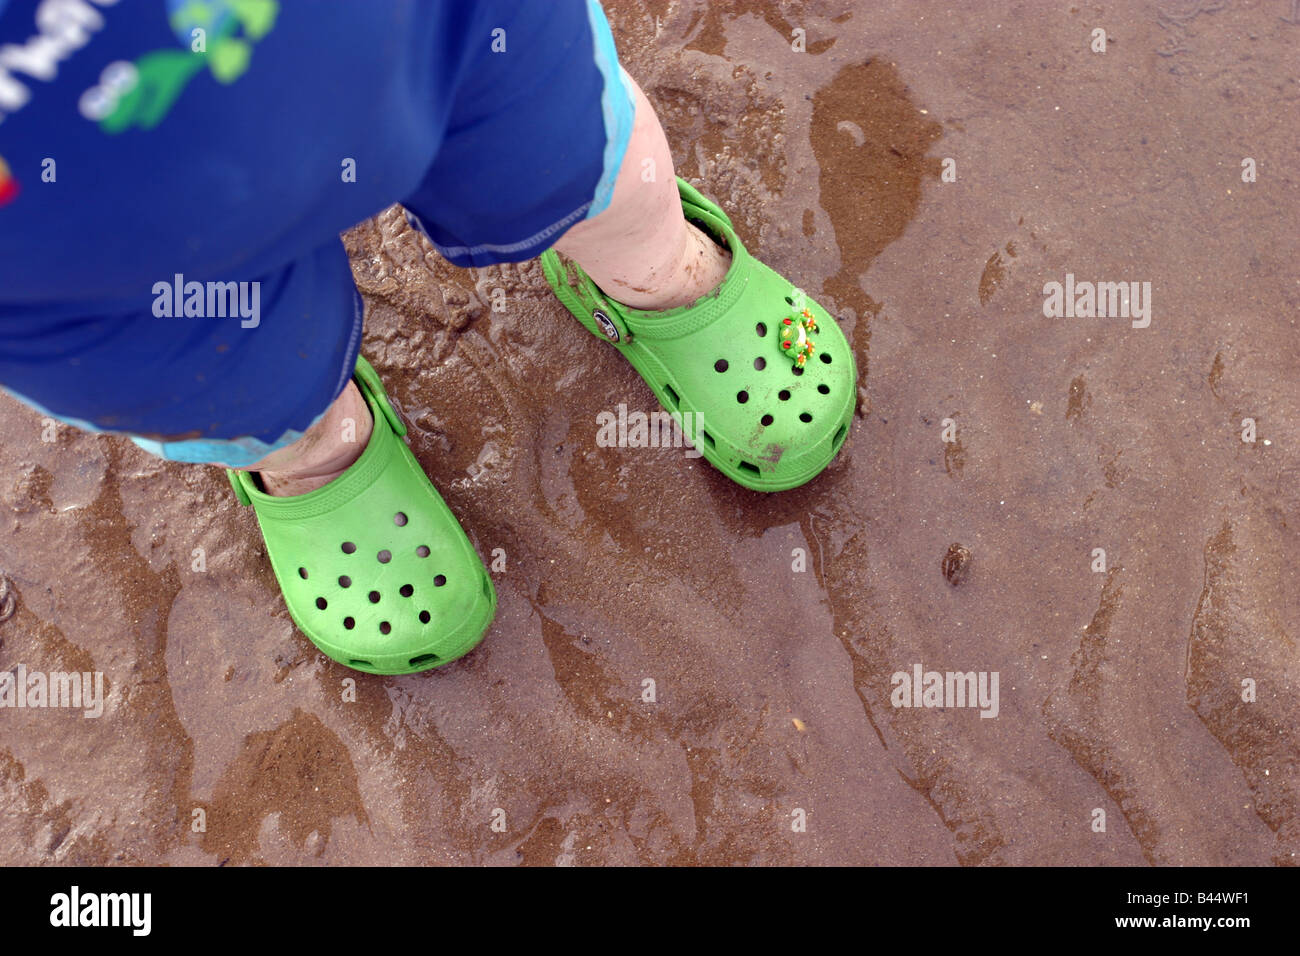 ccb3fb3b2df5 Kid wearing Crocs shoes Stock Photo  19776821 - Alamy